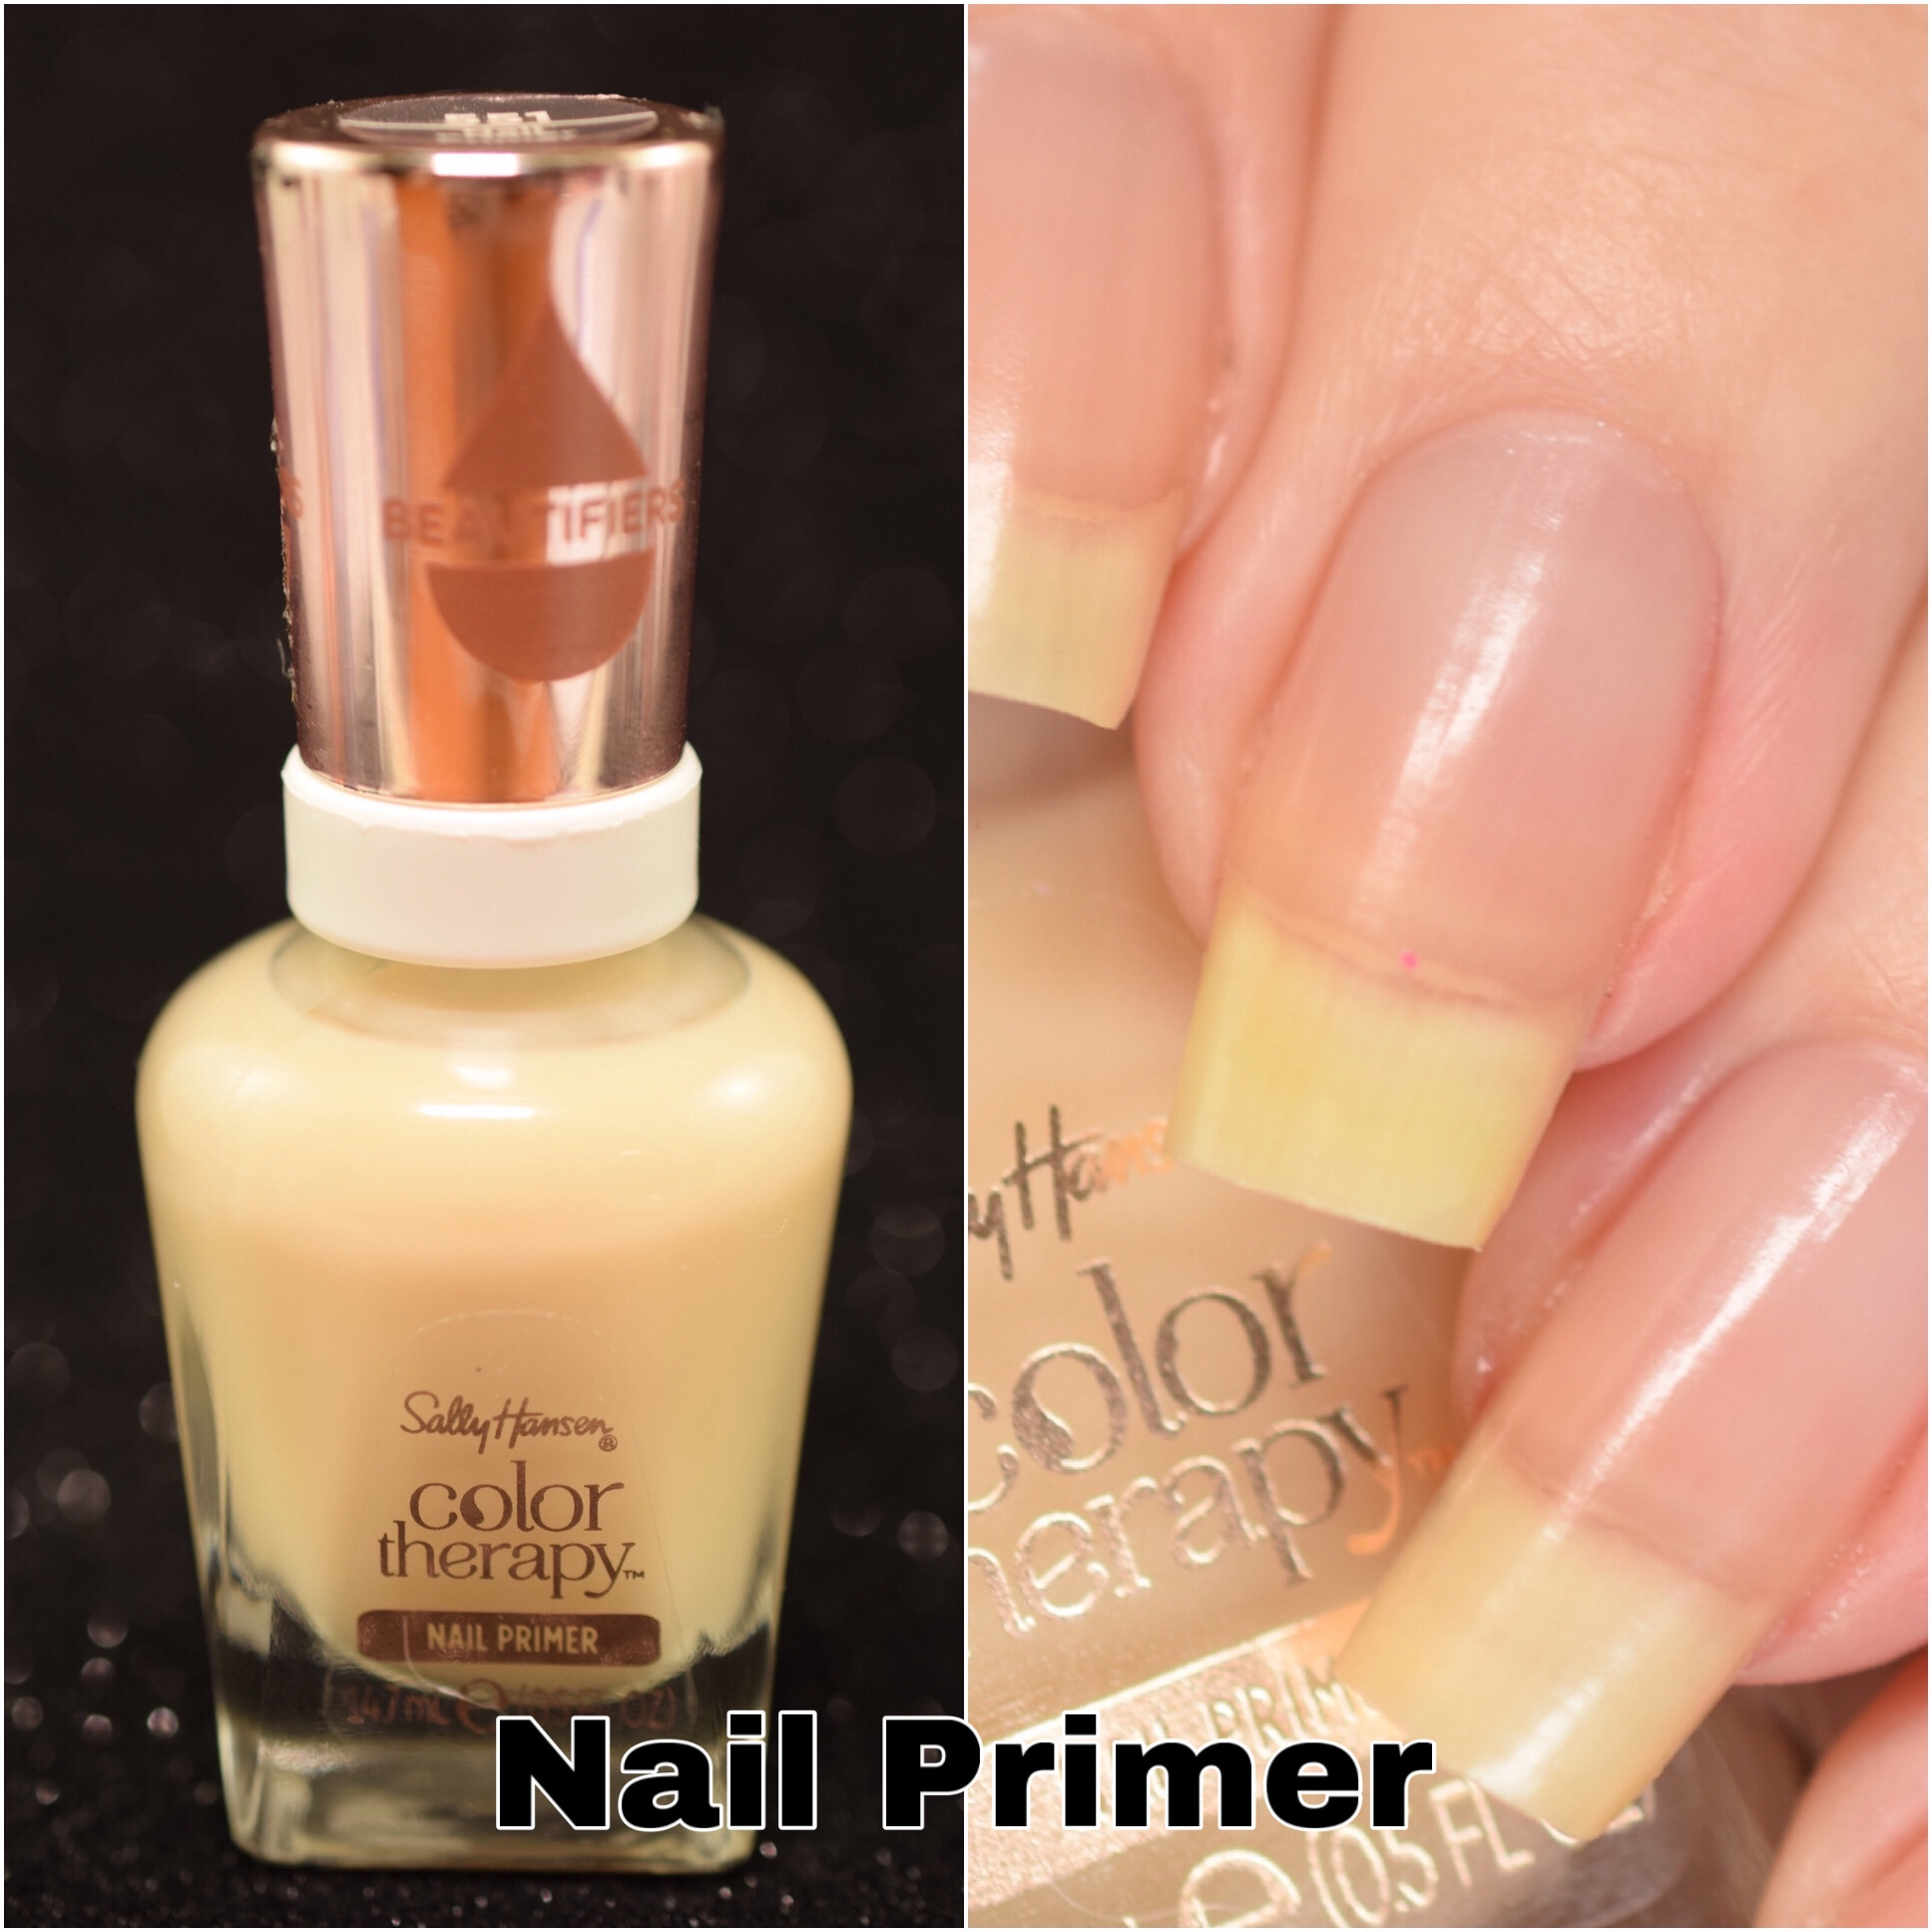 Sally Hansen Color Therapy Nail Primer